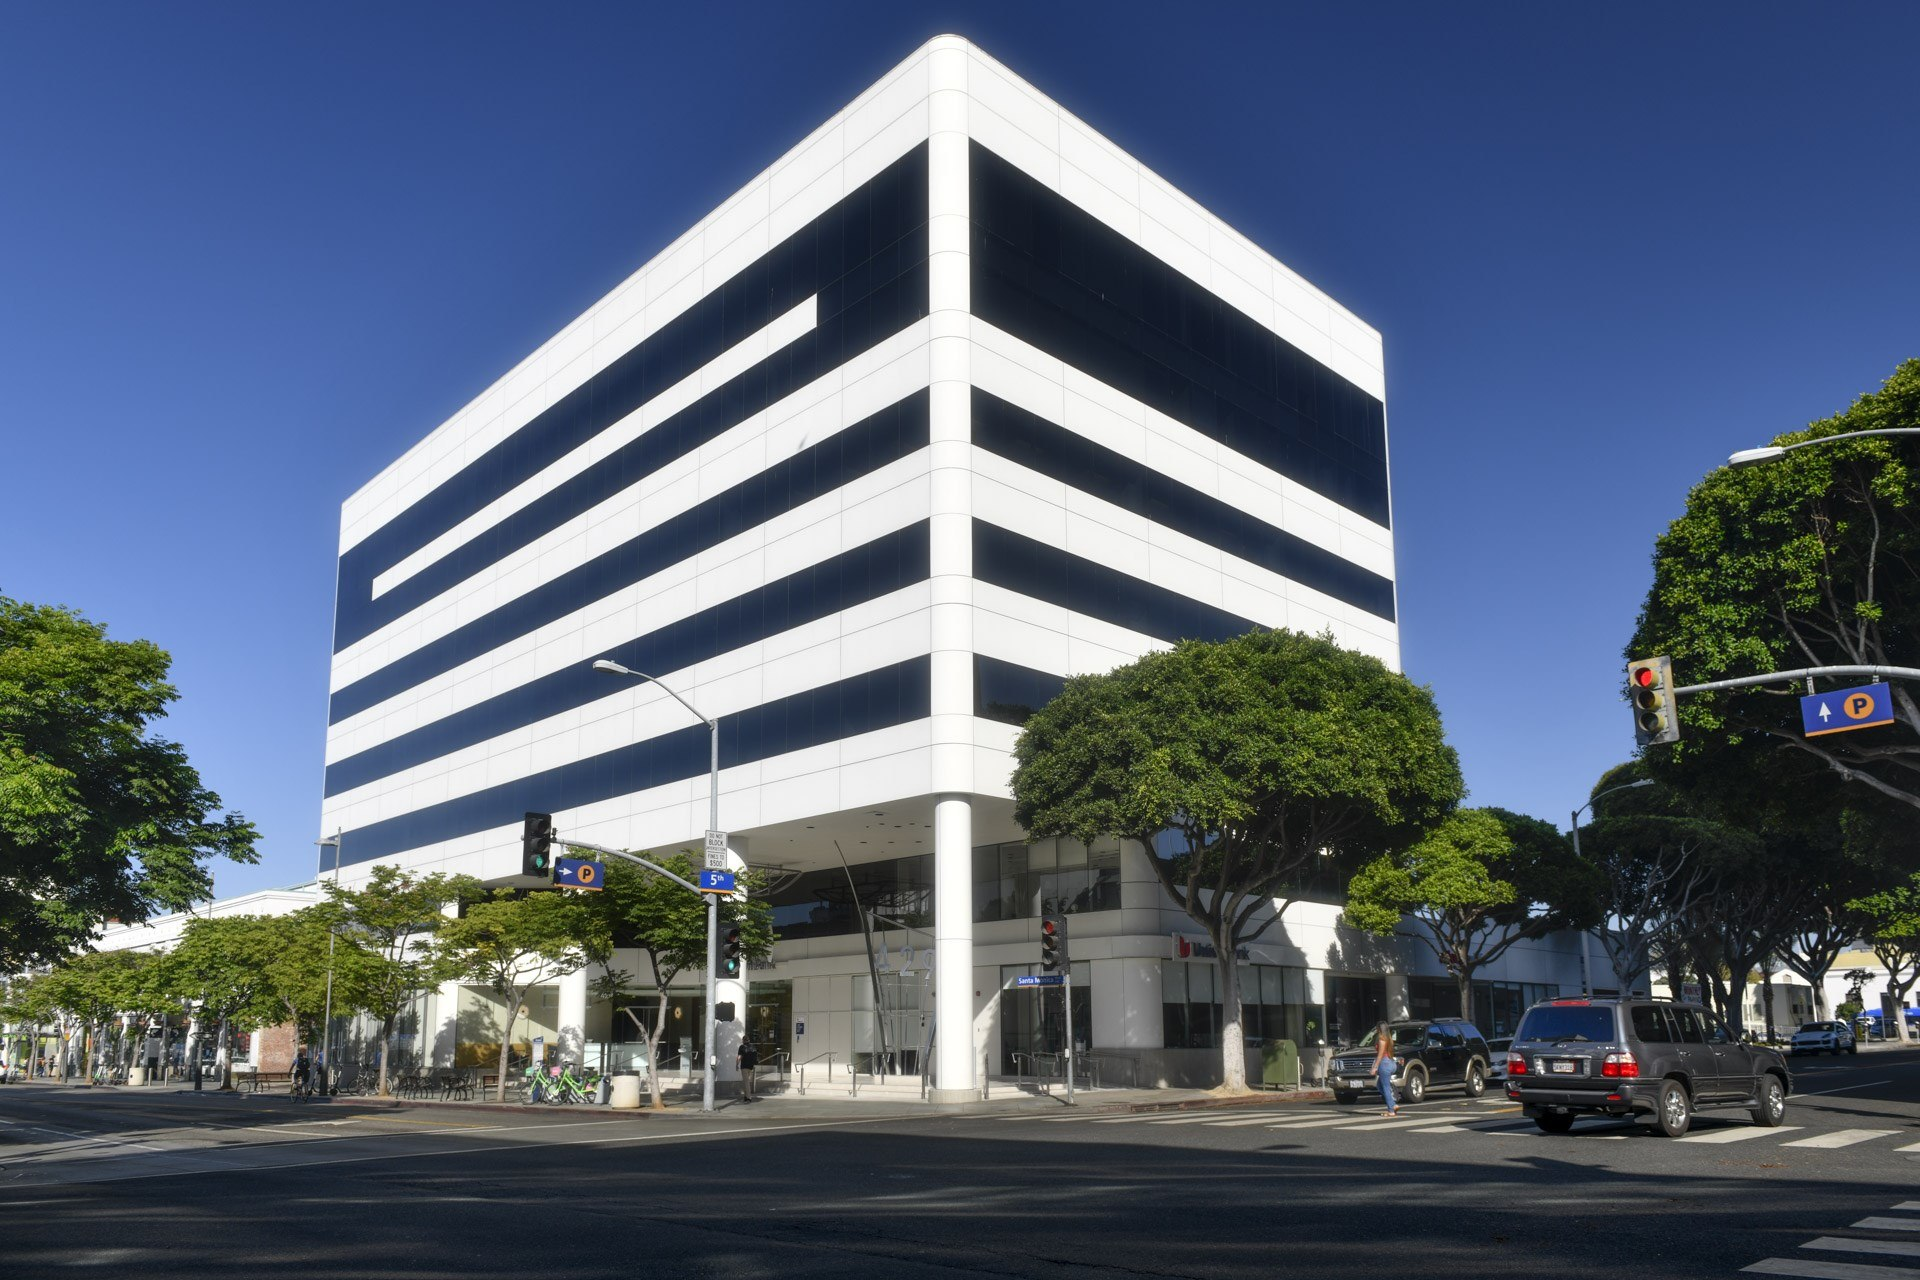 Adobeu0027s New Los Angeles Facility Aims To Provide Professional Level Support  For Hollywood Editors And Other Post Production Professionals.